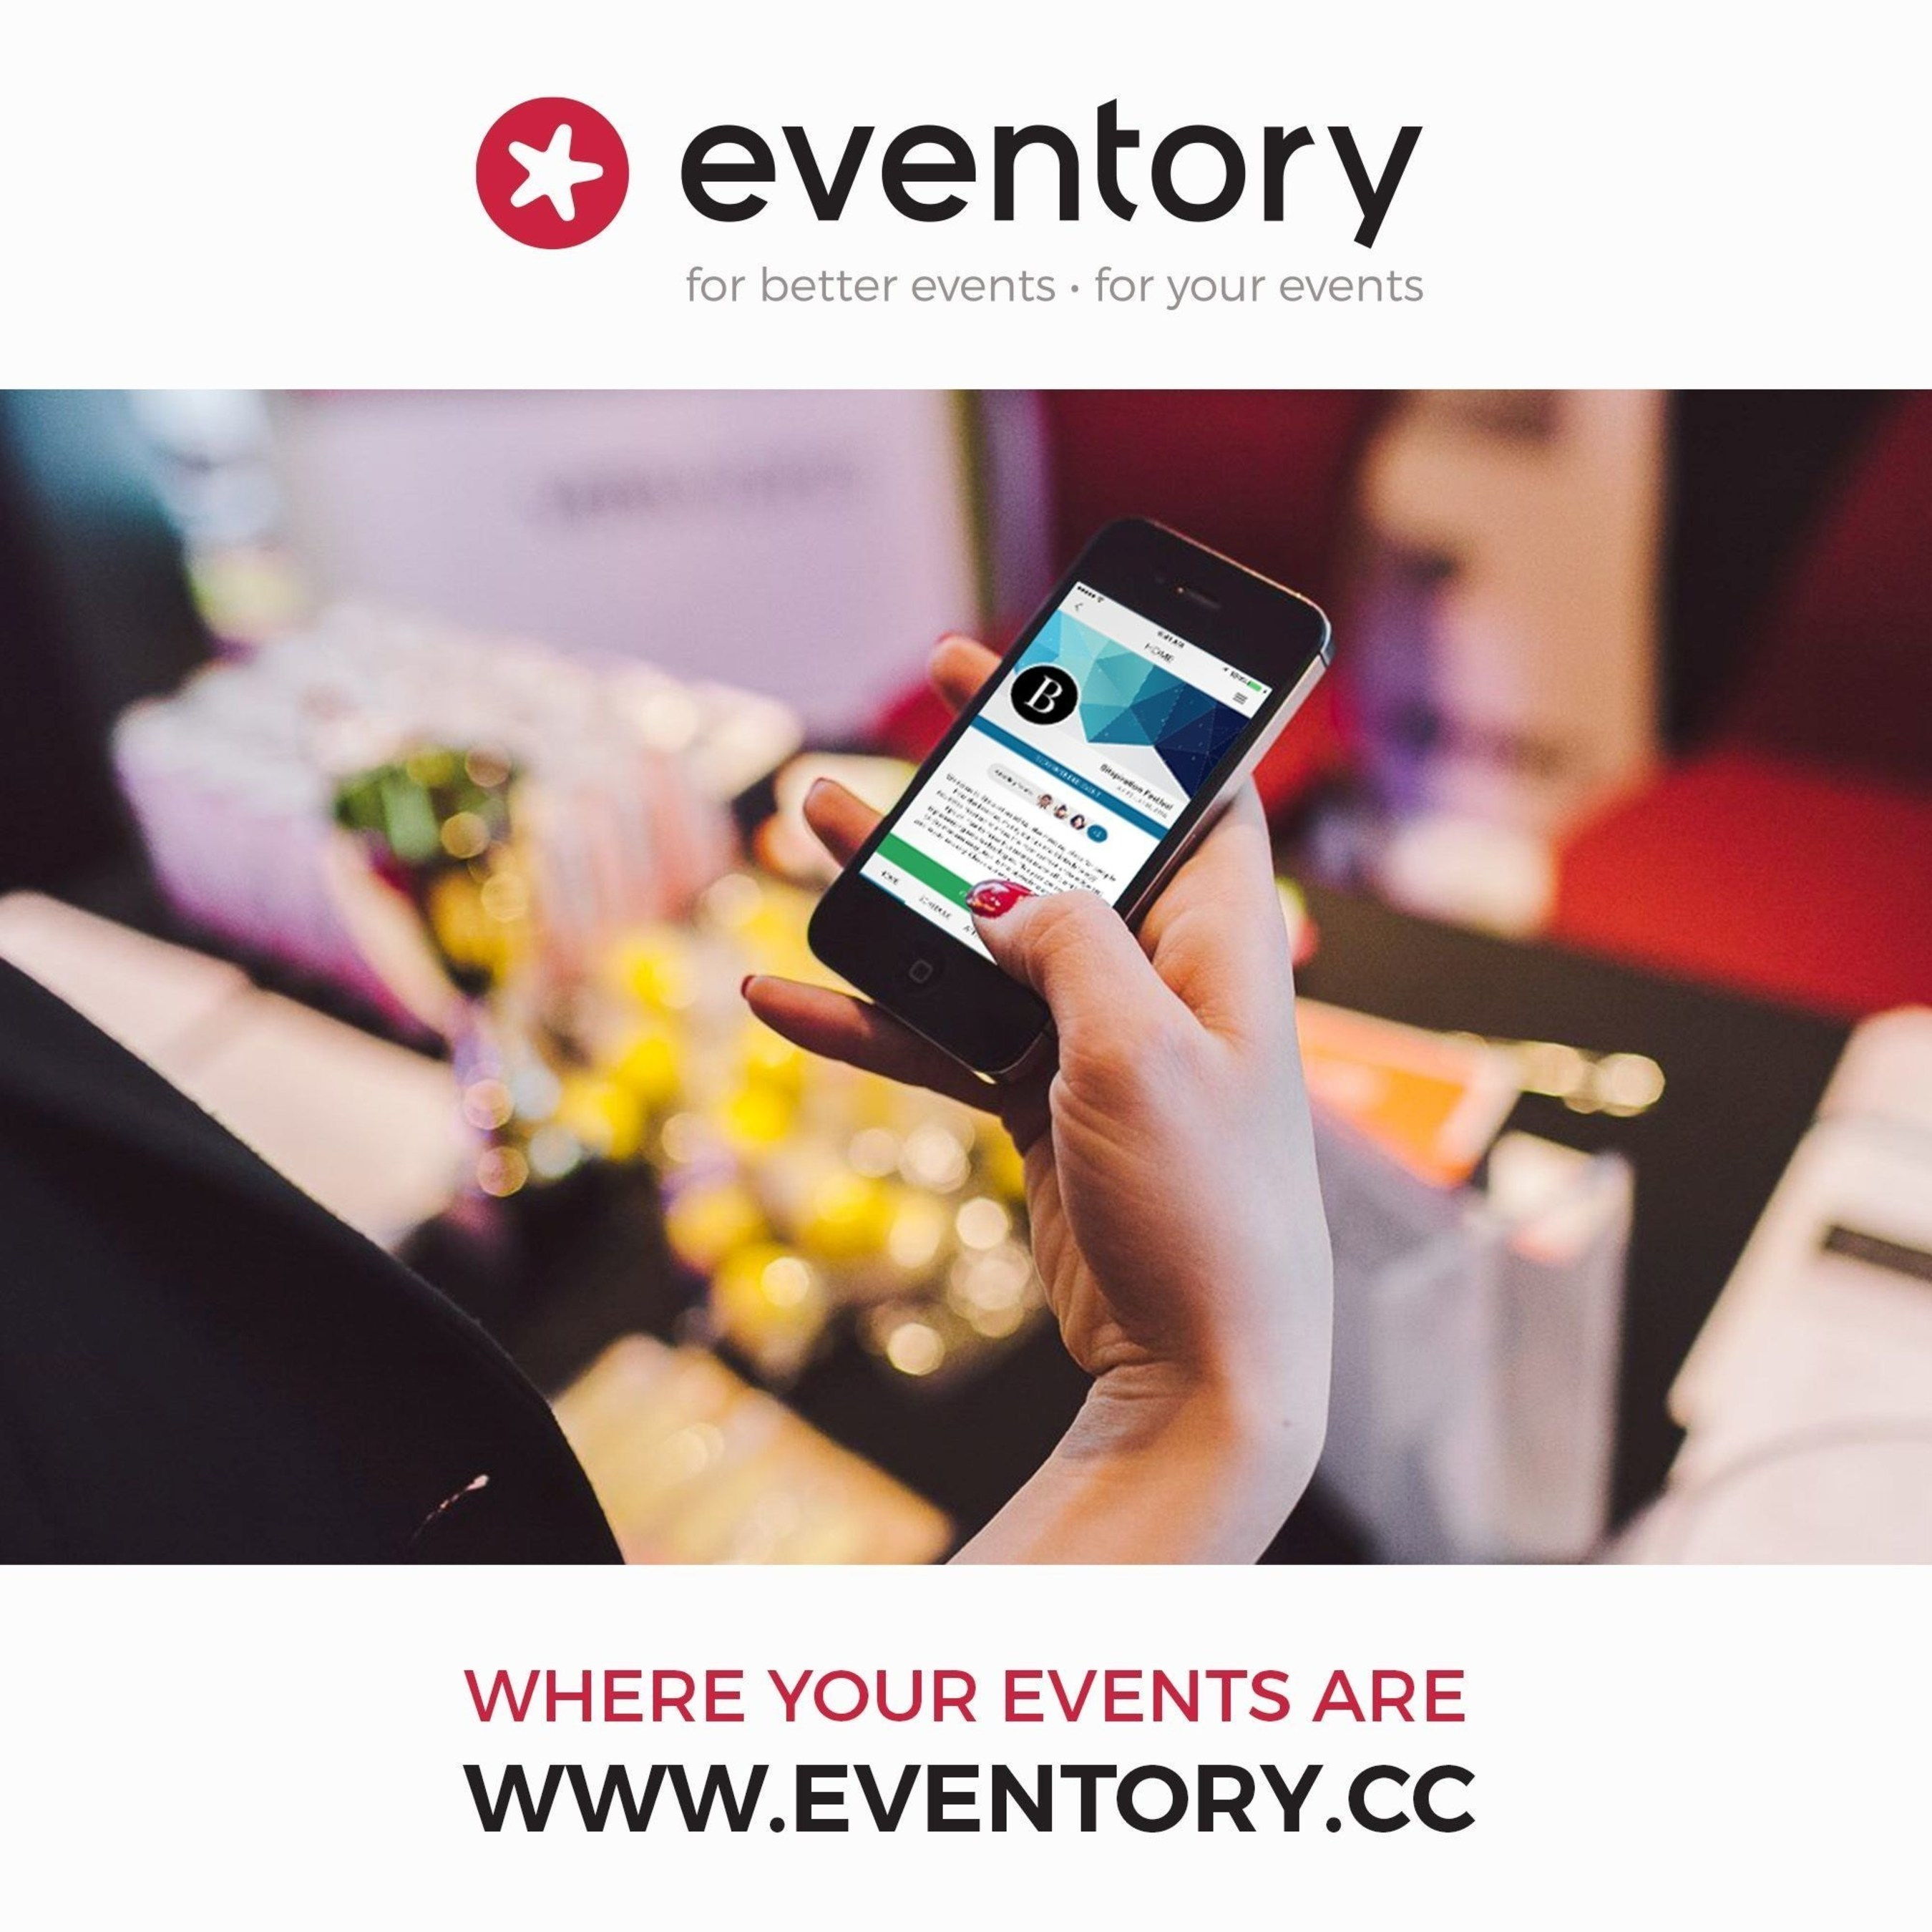 Each event gets its own website as well as a mobile guide for smartphones. It includes everything that would come in a printed conference booklet - the agenda and basic information, schedule, maps, speaker profiles, event descriptions. You get to see who else will be attending, message them in the app, and create your own schedule that's automatically added to your calendar. You can also take lecture notes, rate the talks in real-time and immediately find out about any organizational changes